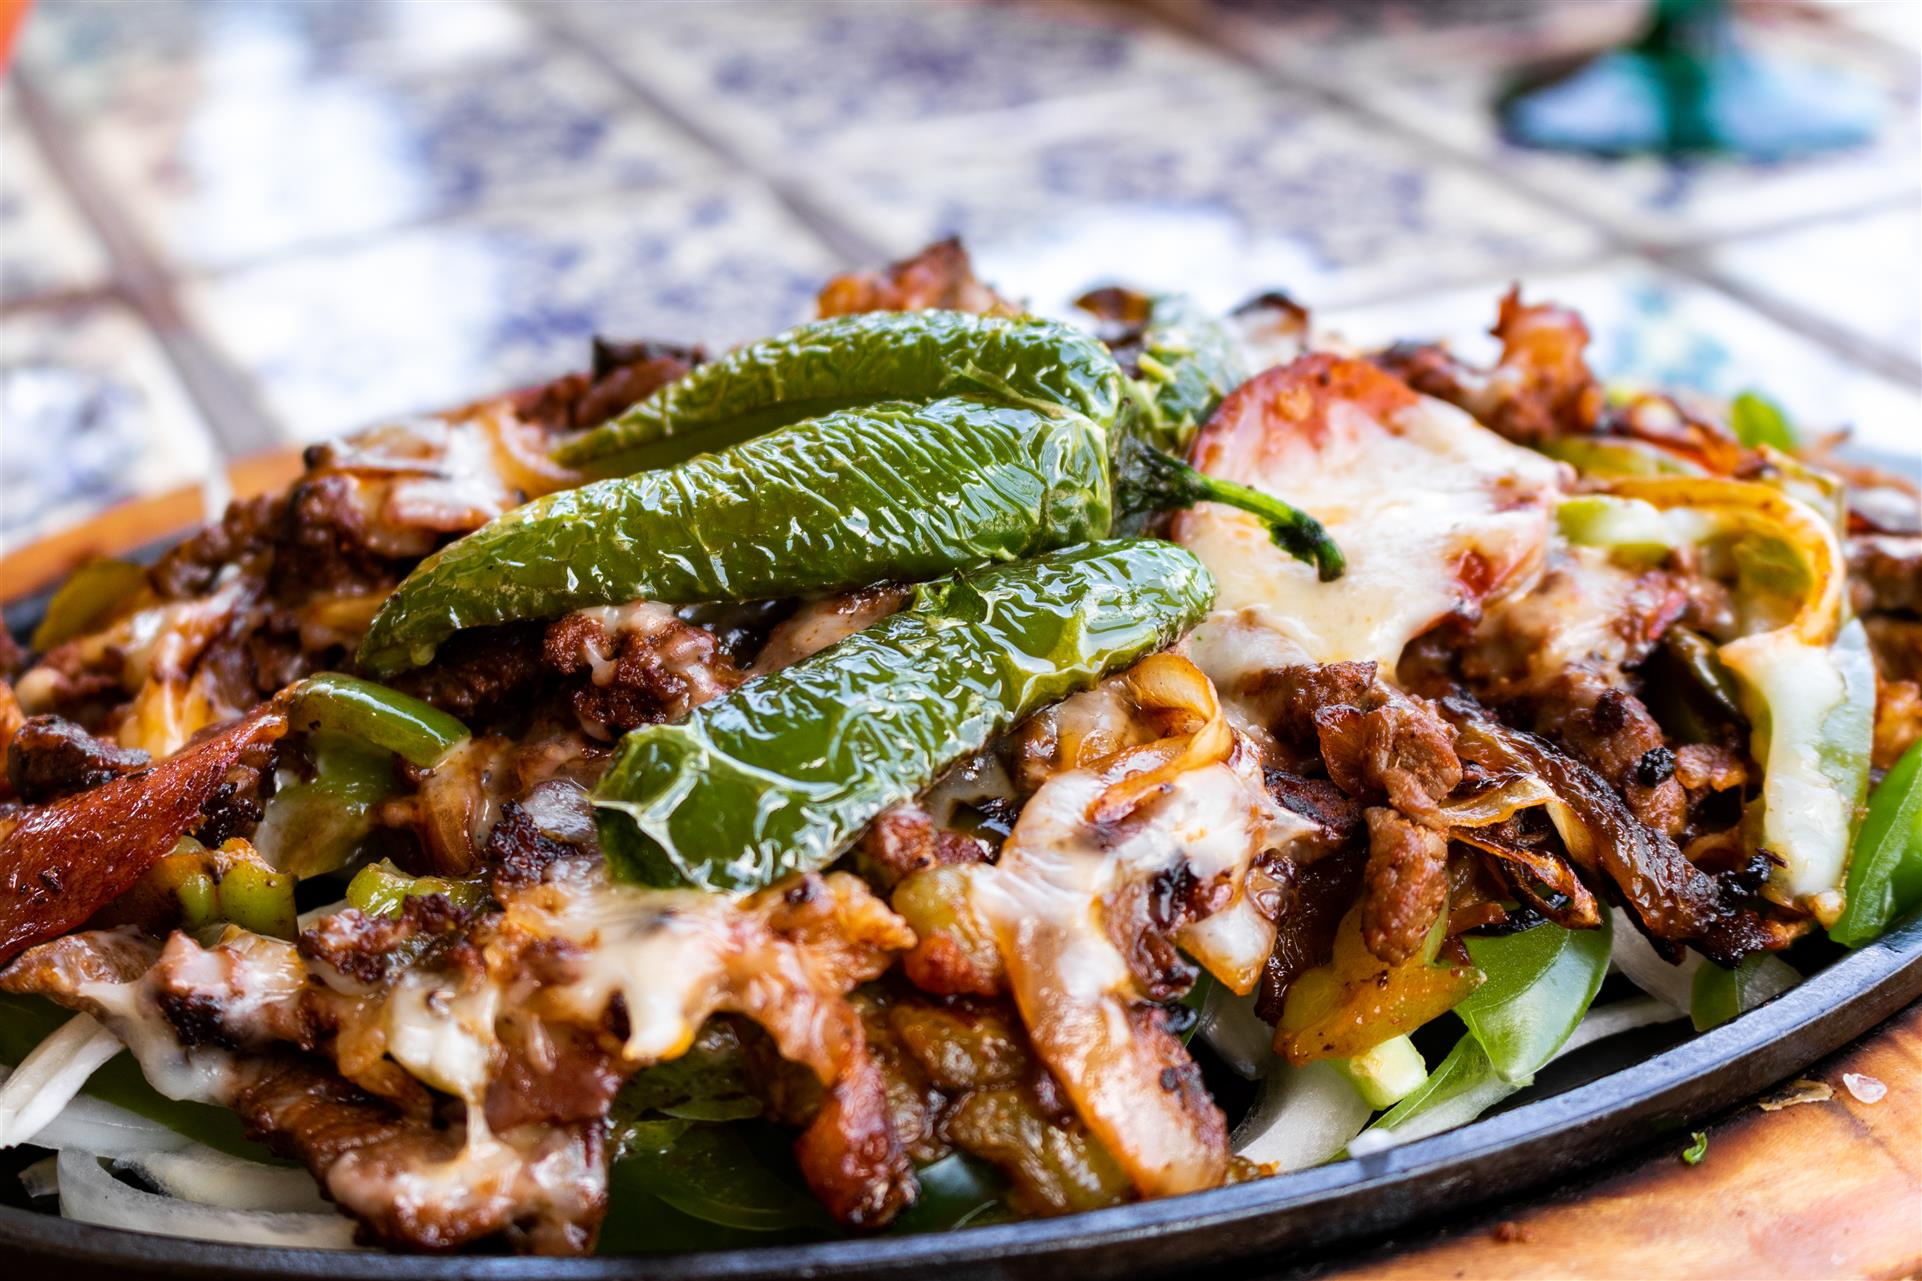 beef skillet with onions, peppers and cheese